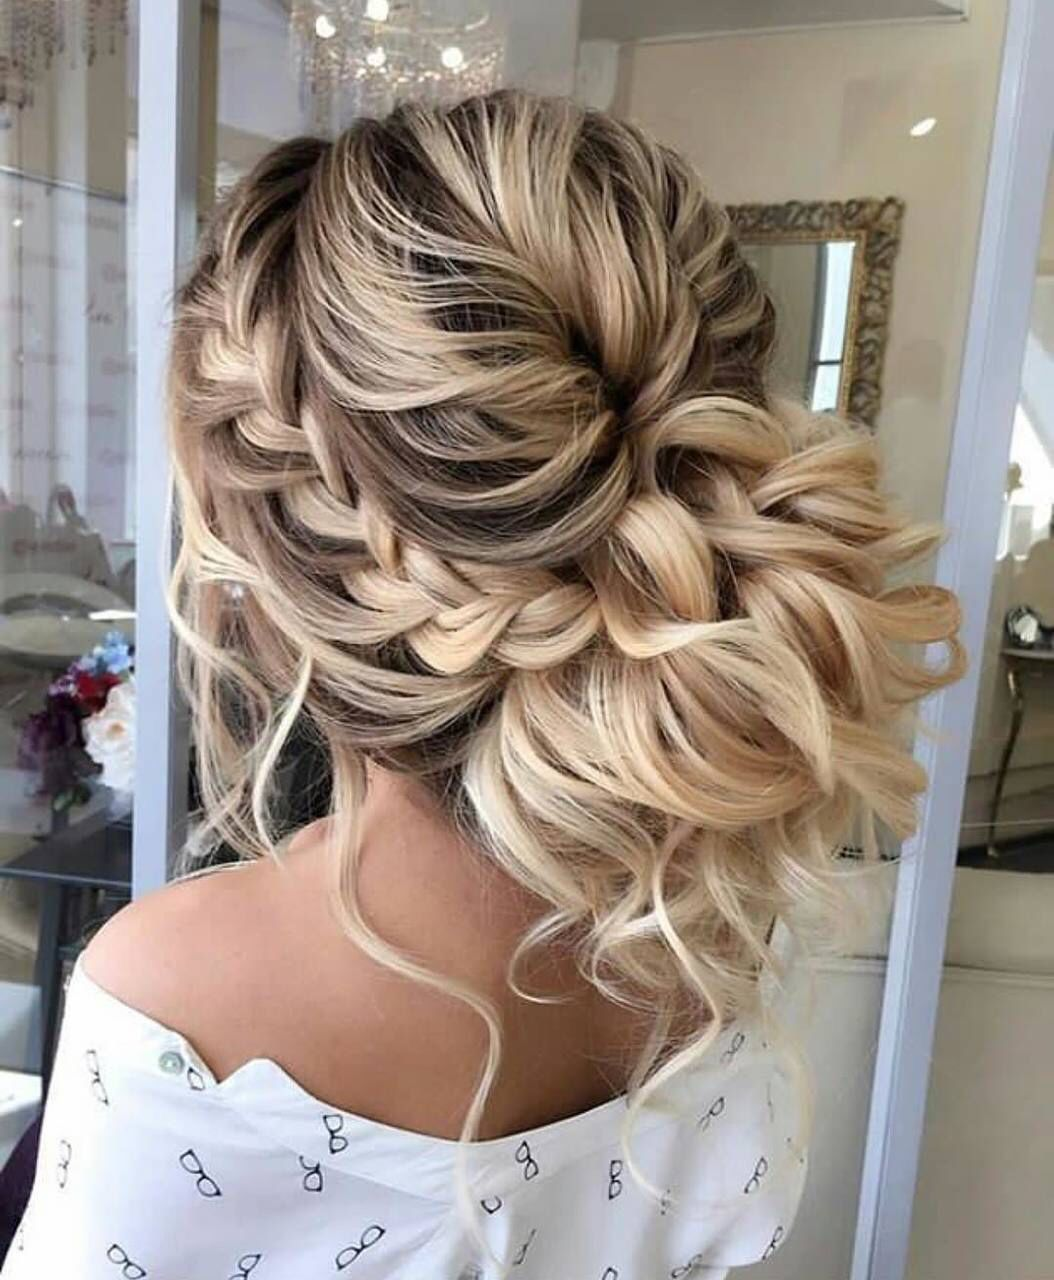 pinterest // @alexandrahuffy ☼ ☾ | hair | wedding